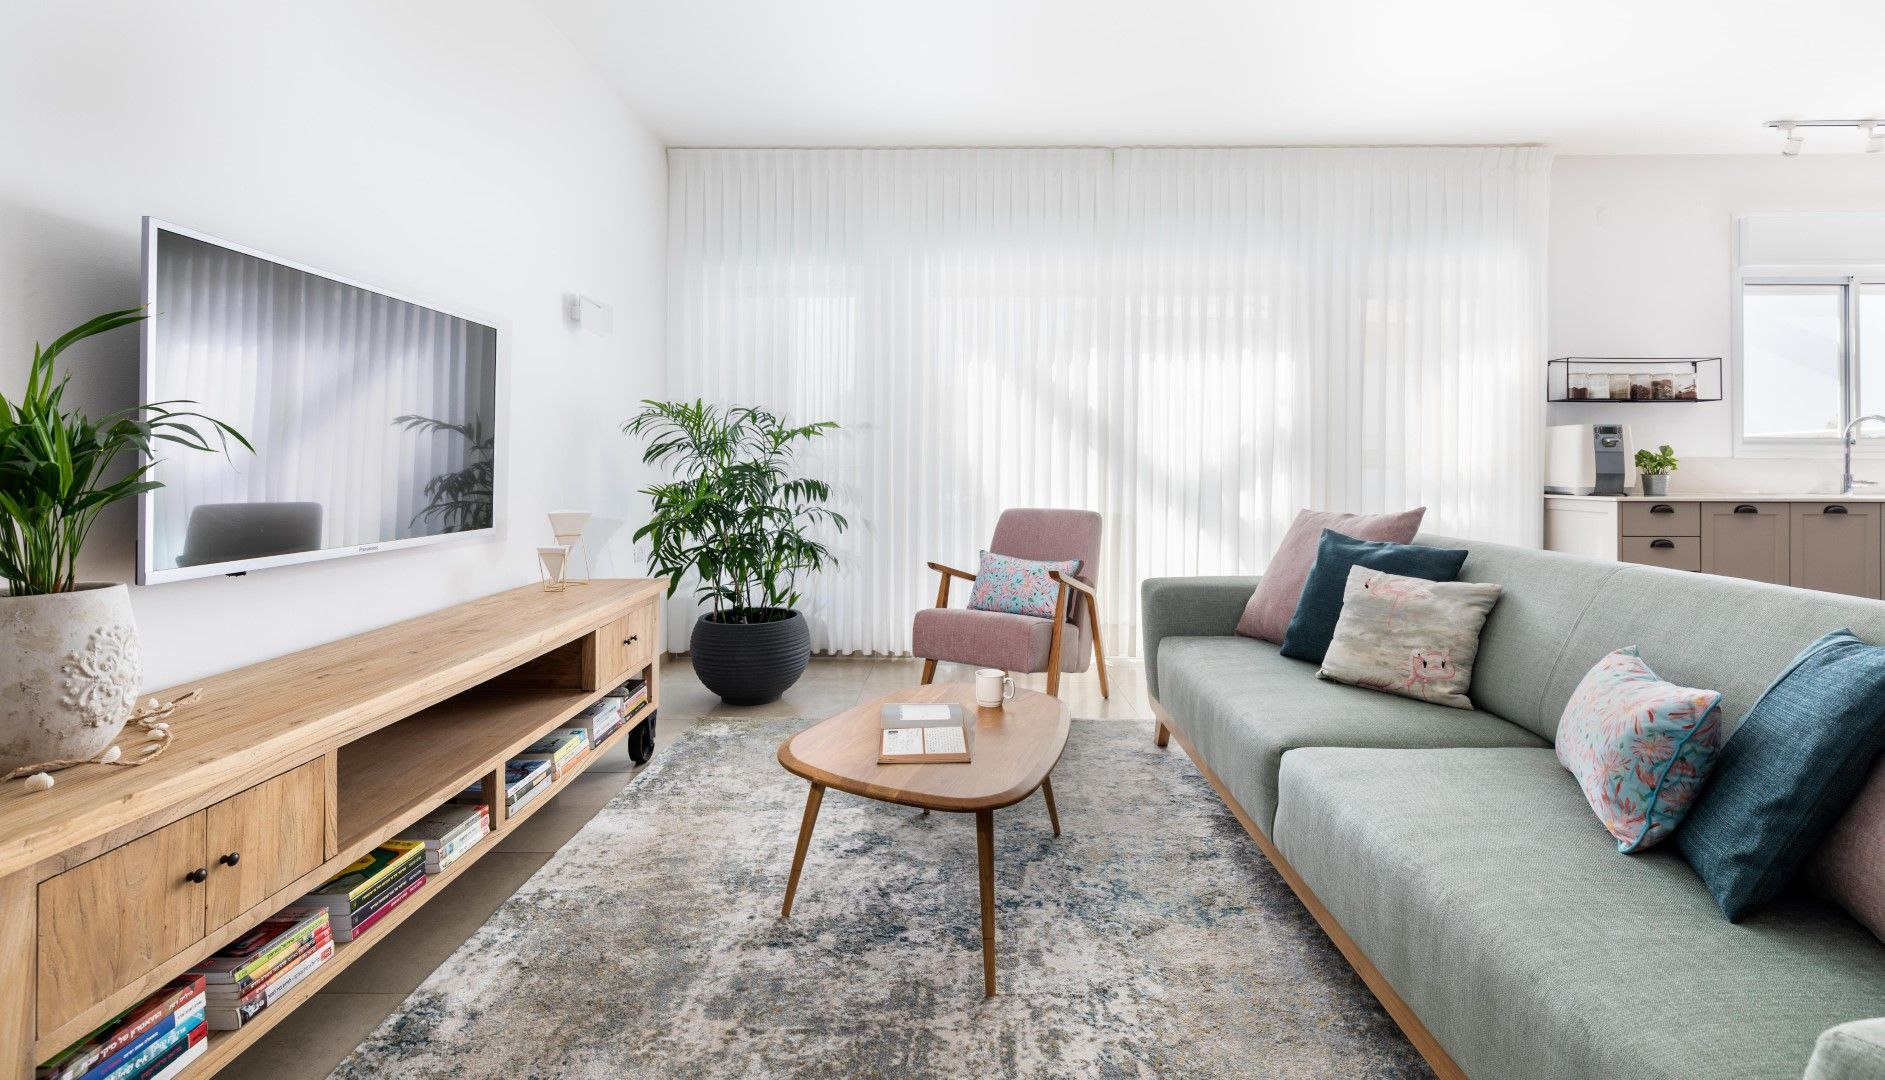 Adding character to  new build home design and styling an apartment in development konvalinka homedecor beautifulhomes also rh pinterest